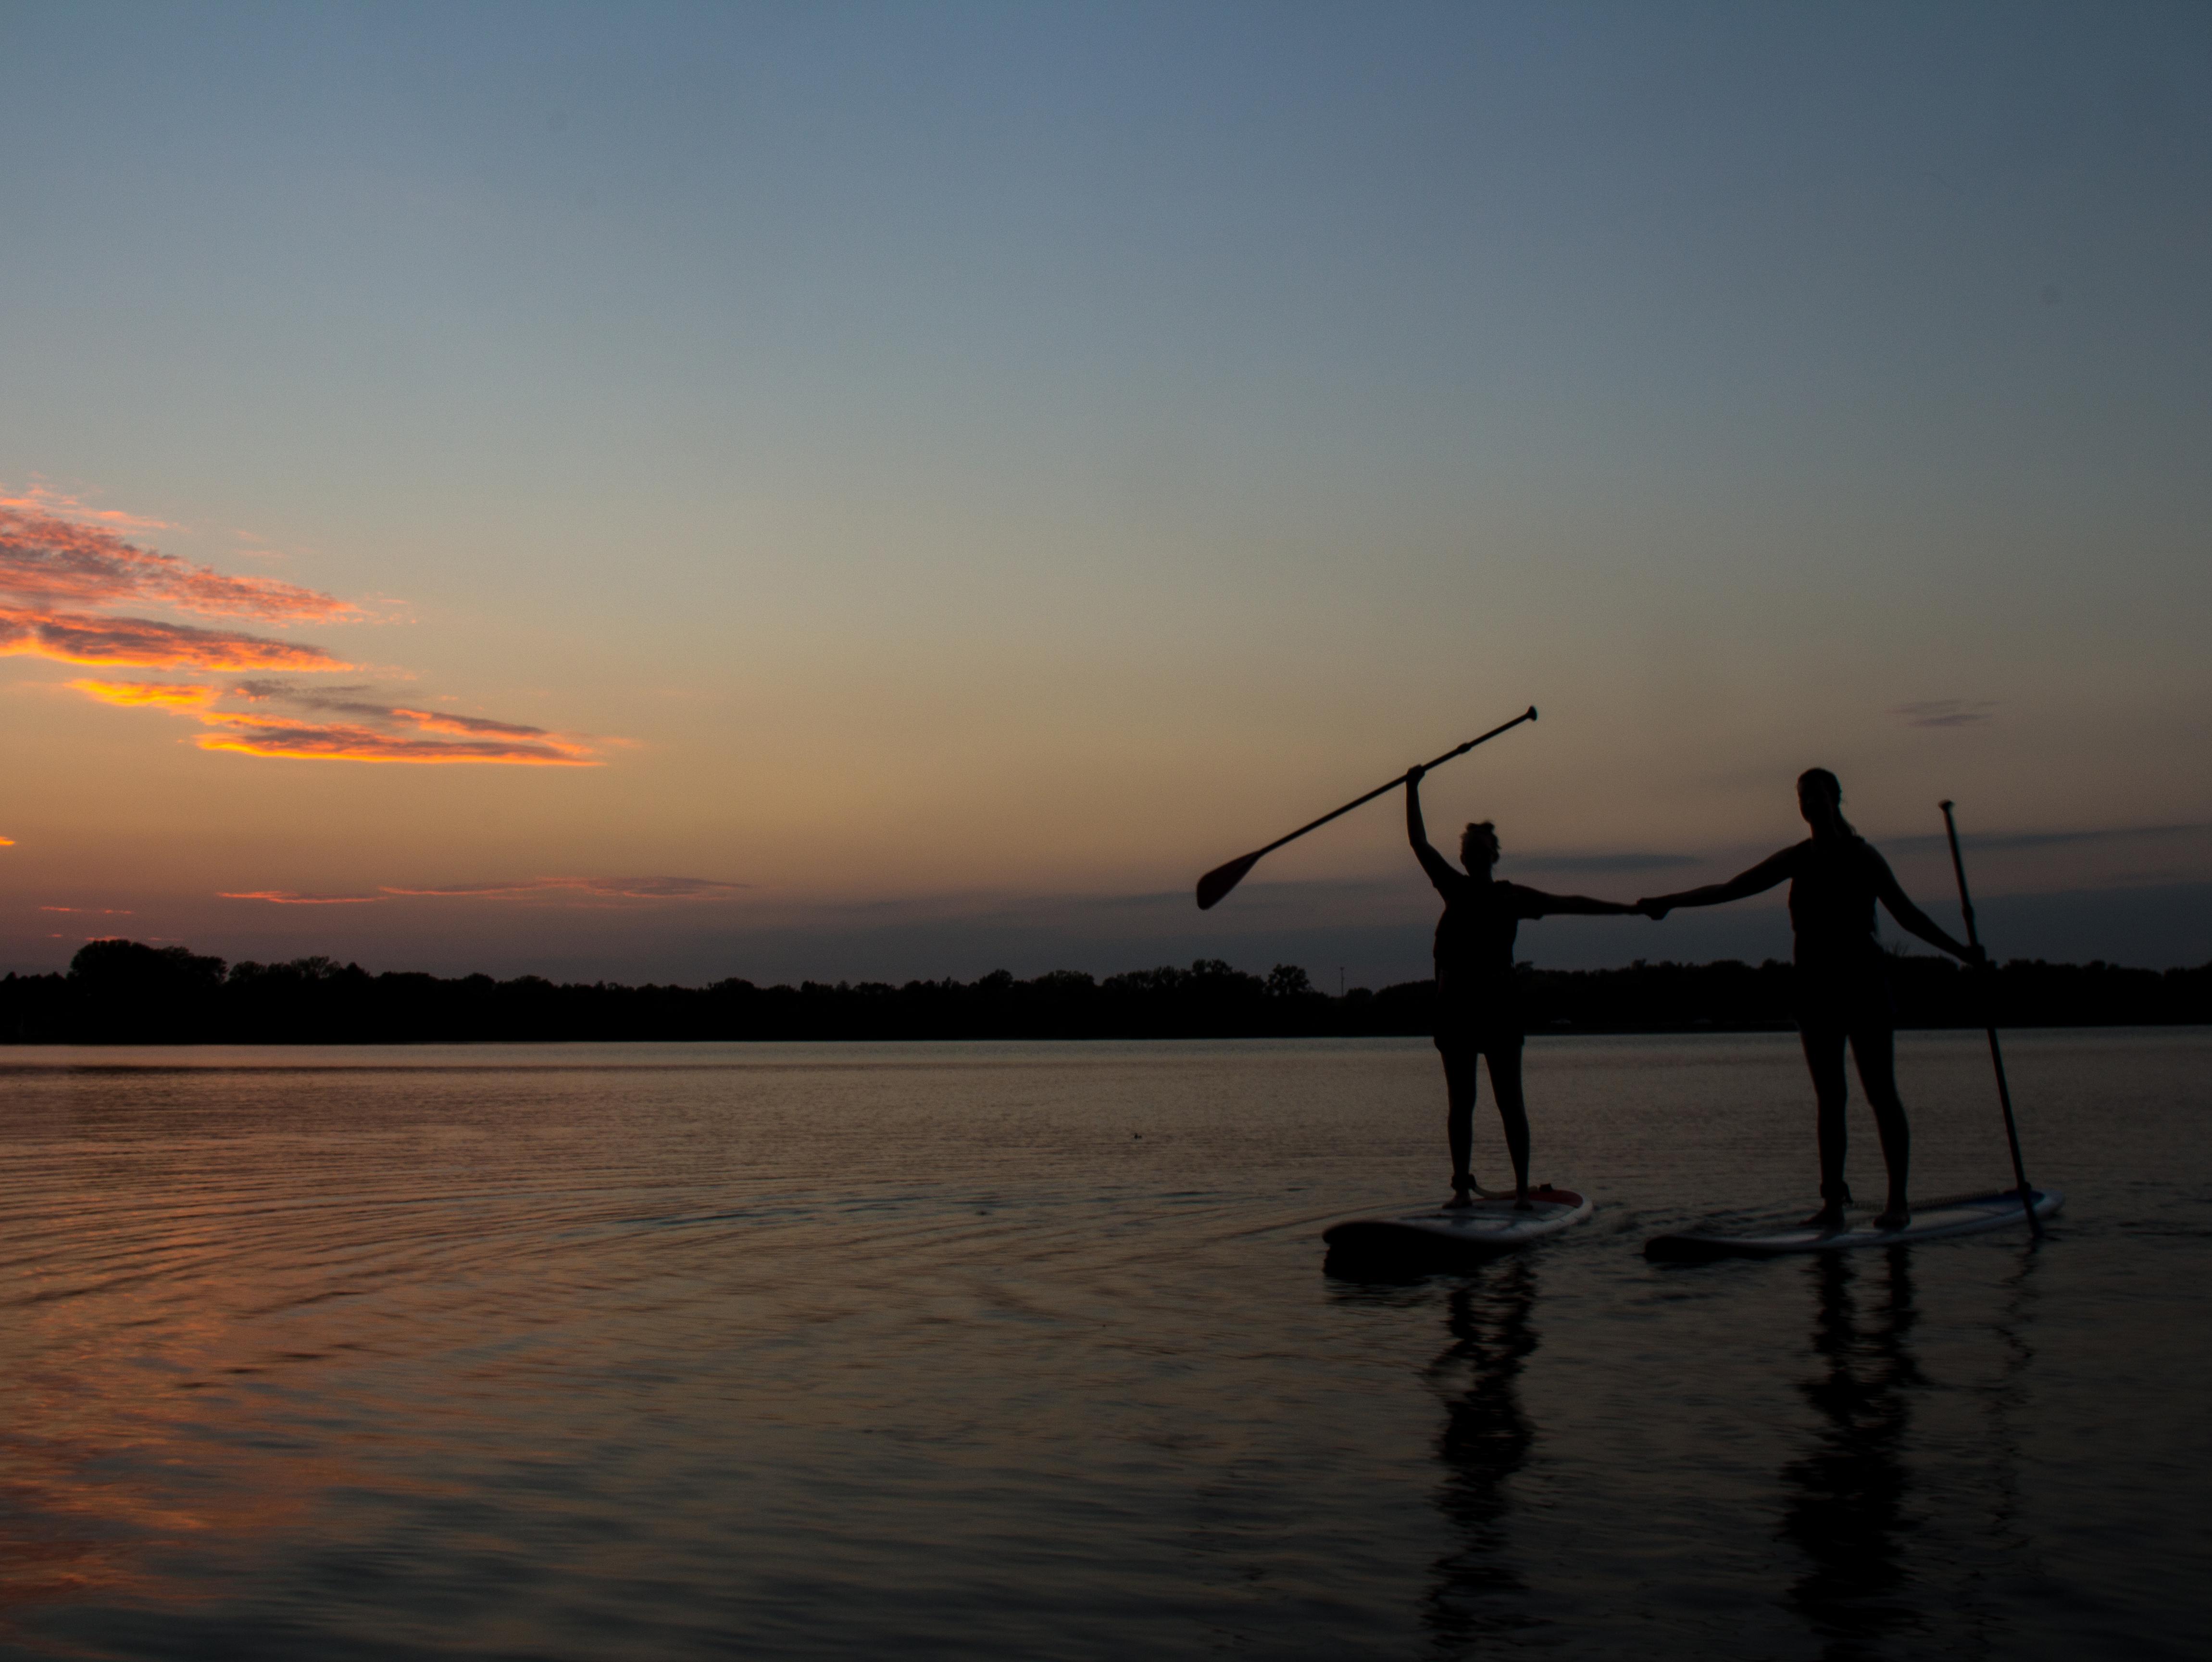 University of Nebraska-Lincoln students can enjoy a relxing evening of paddle board and kayaking on April 12 and April 26 with the Outdoor Adventures Center.